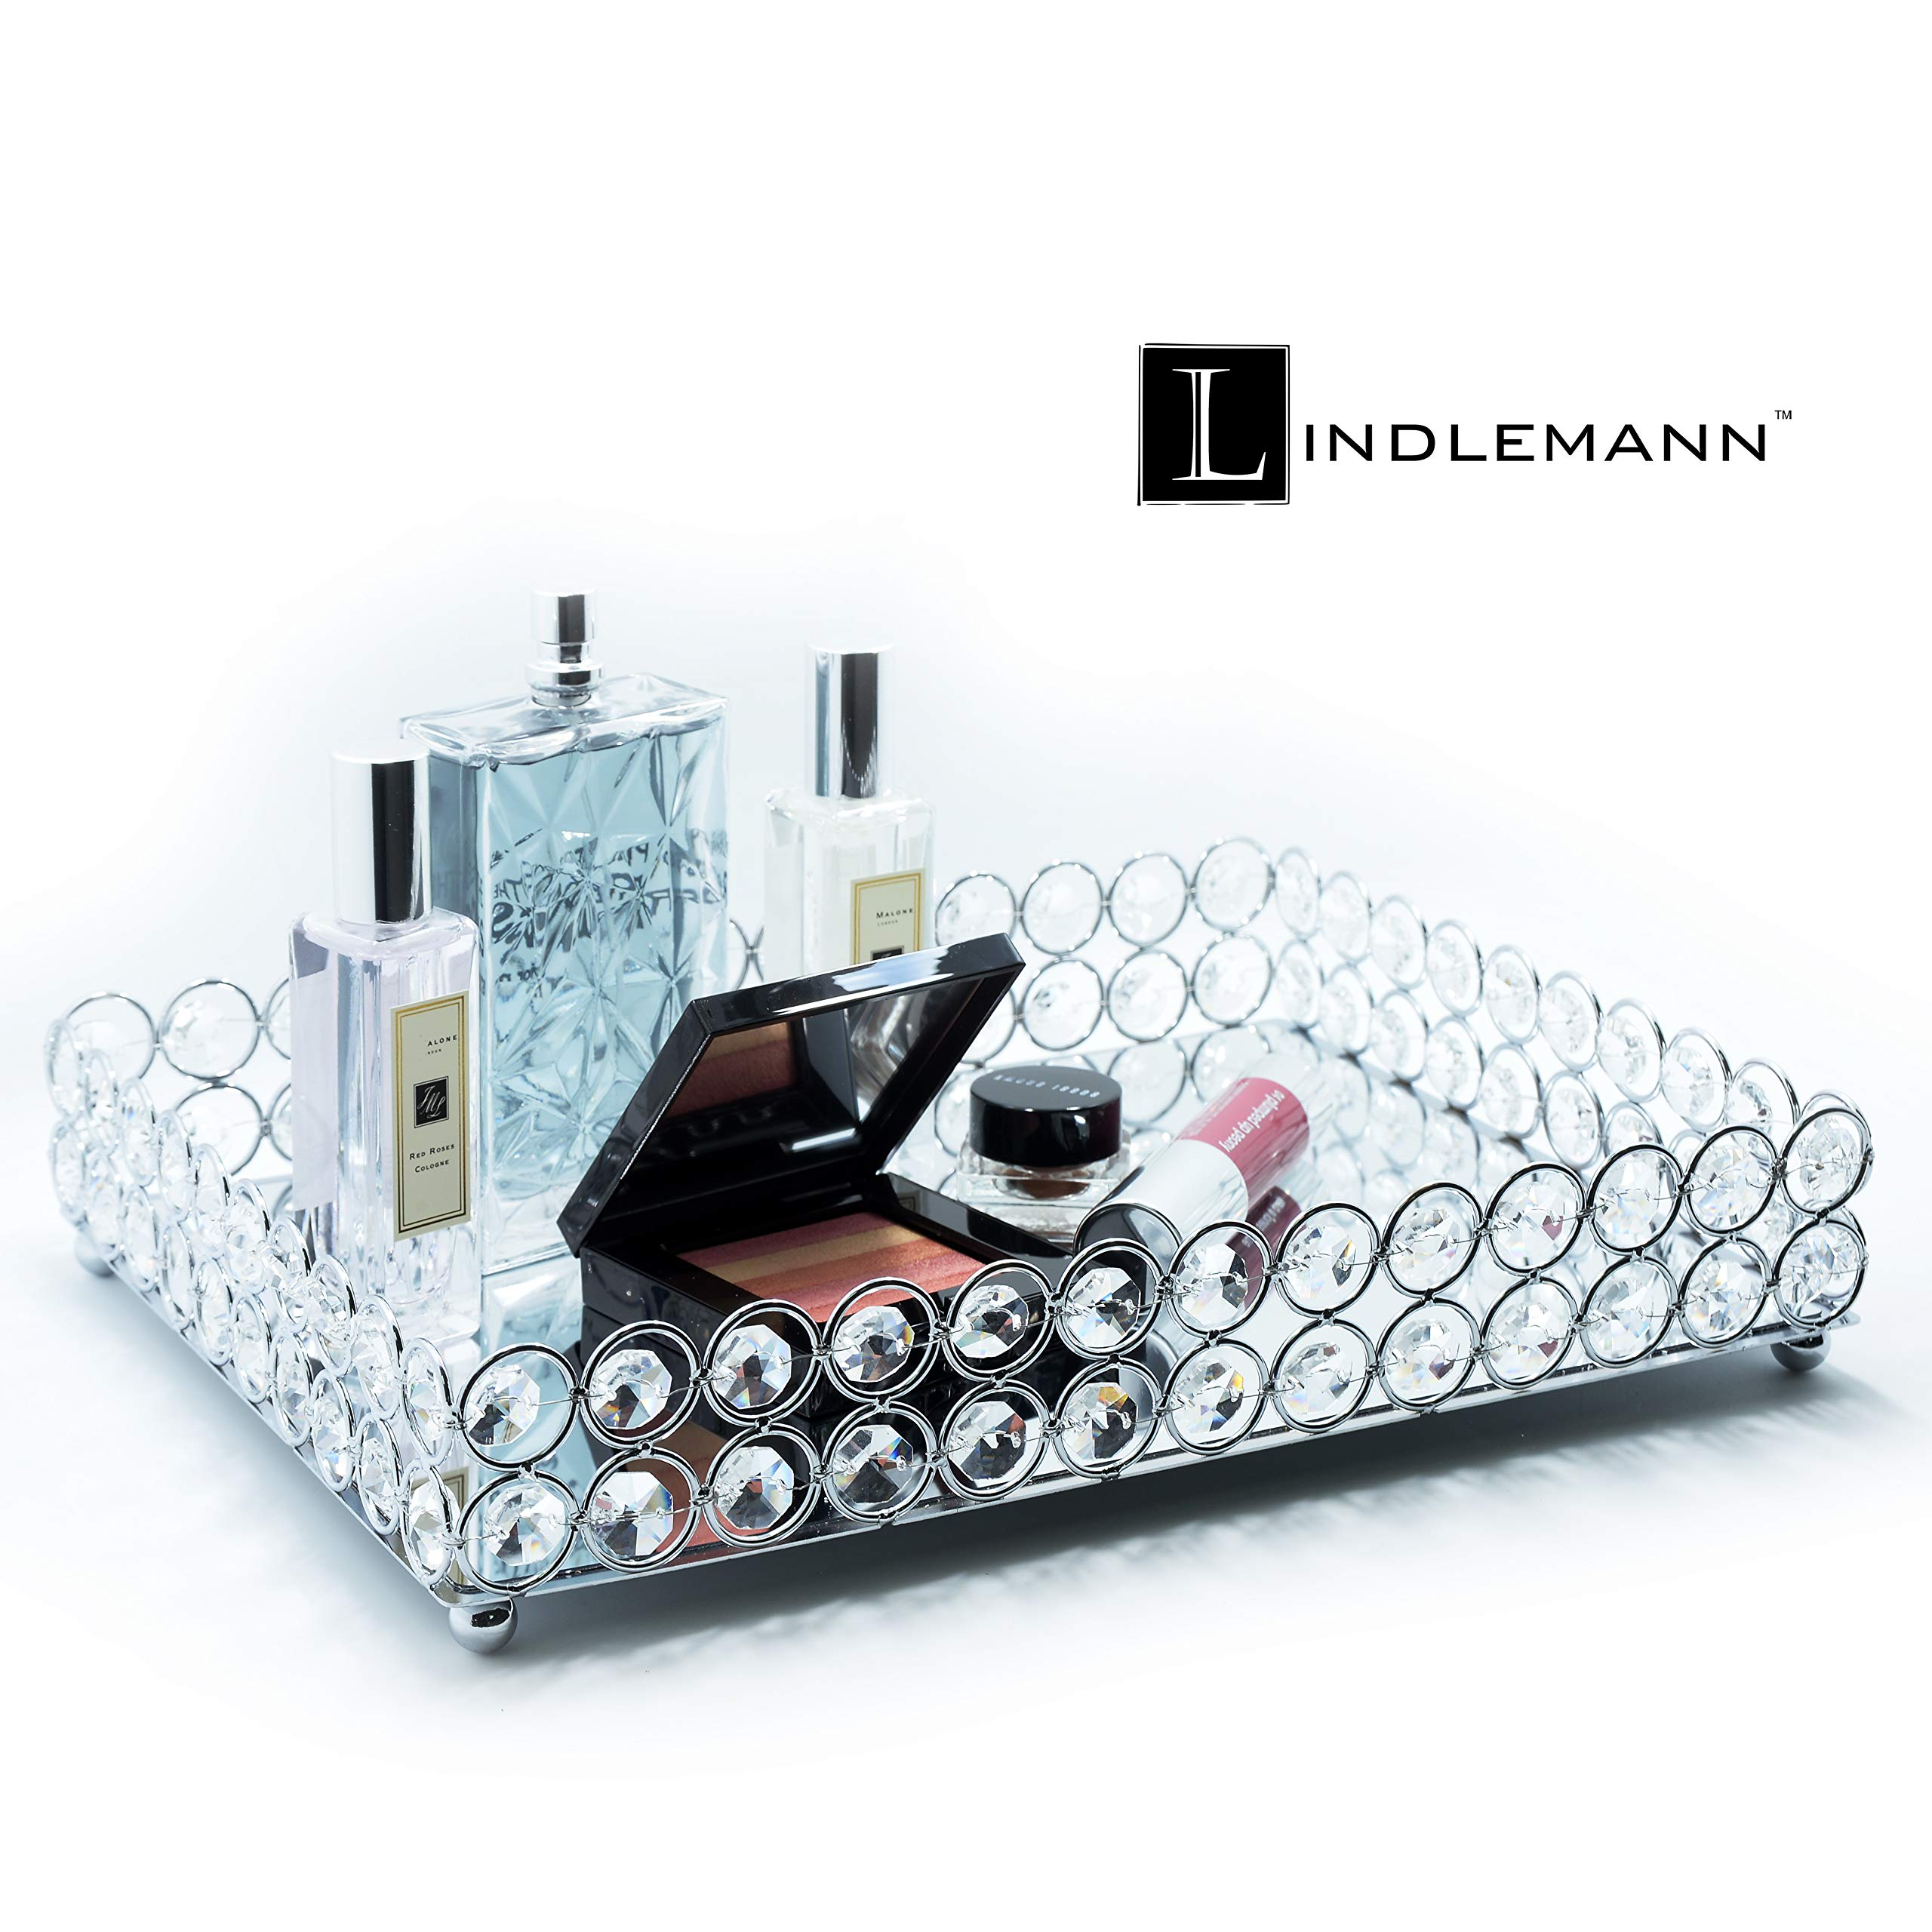 Lindlemann Mirrored Crystal Vanity Tray - Ornate Decorative Tray for Perfume, Jewelry and Makeup (Rectangle 12 x 9 inches, Silver) by Lindlemann (Image #3)